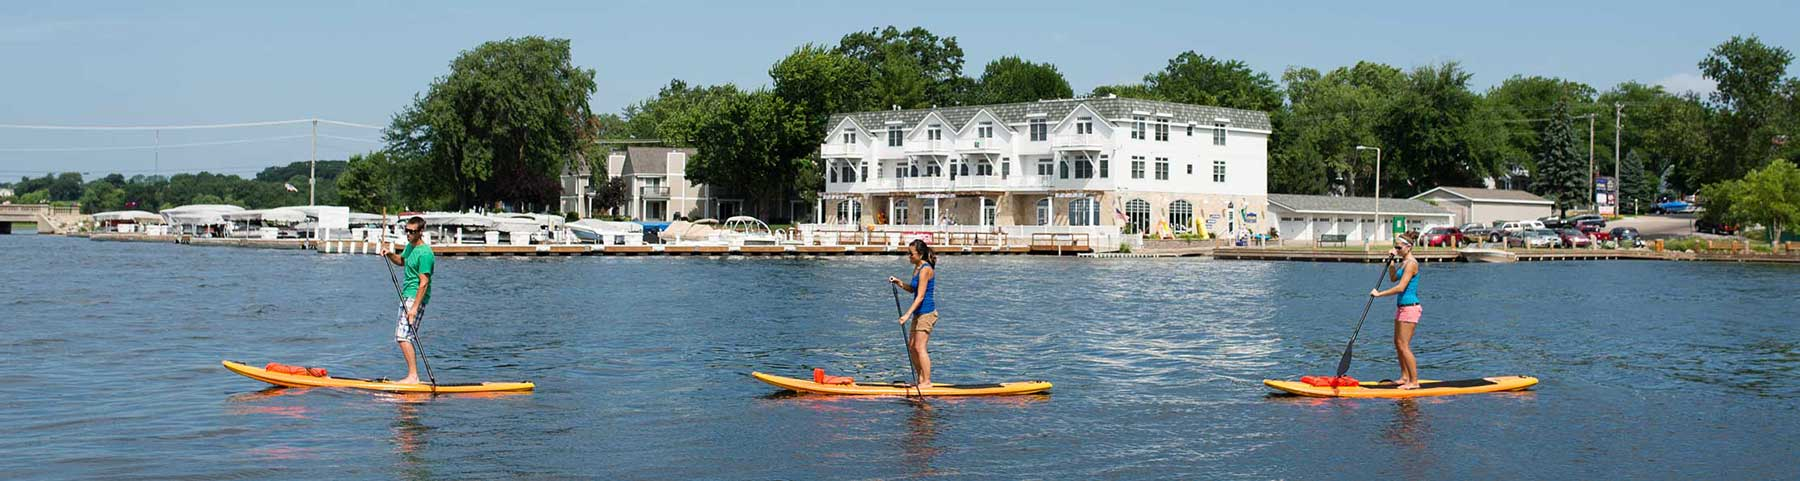 water sports in green lake wi, heidel house resort & spa water recreation